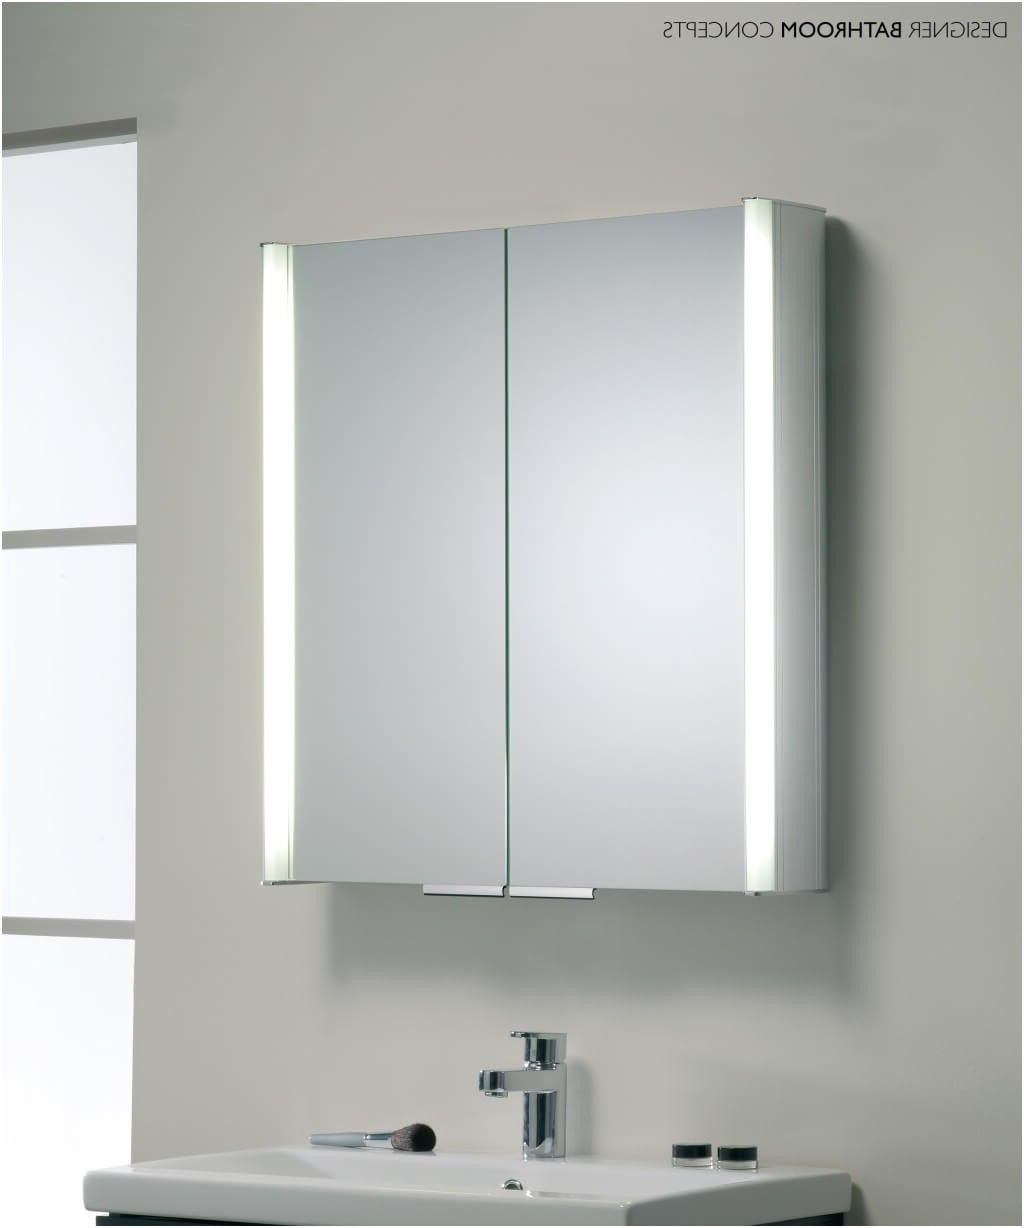 bathroom mirror cabinets bathroom cabinets from Mirrored Bathroom ...